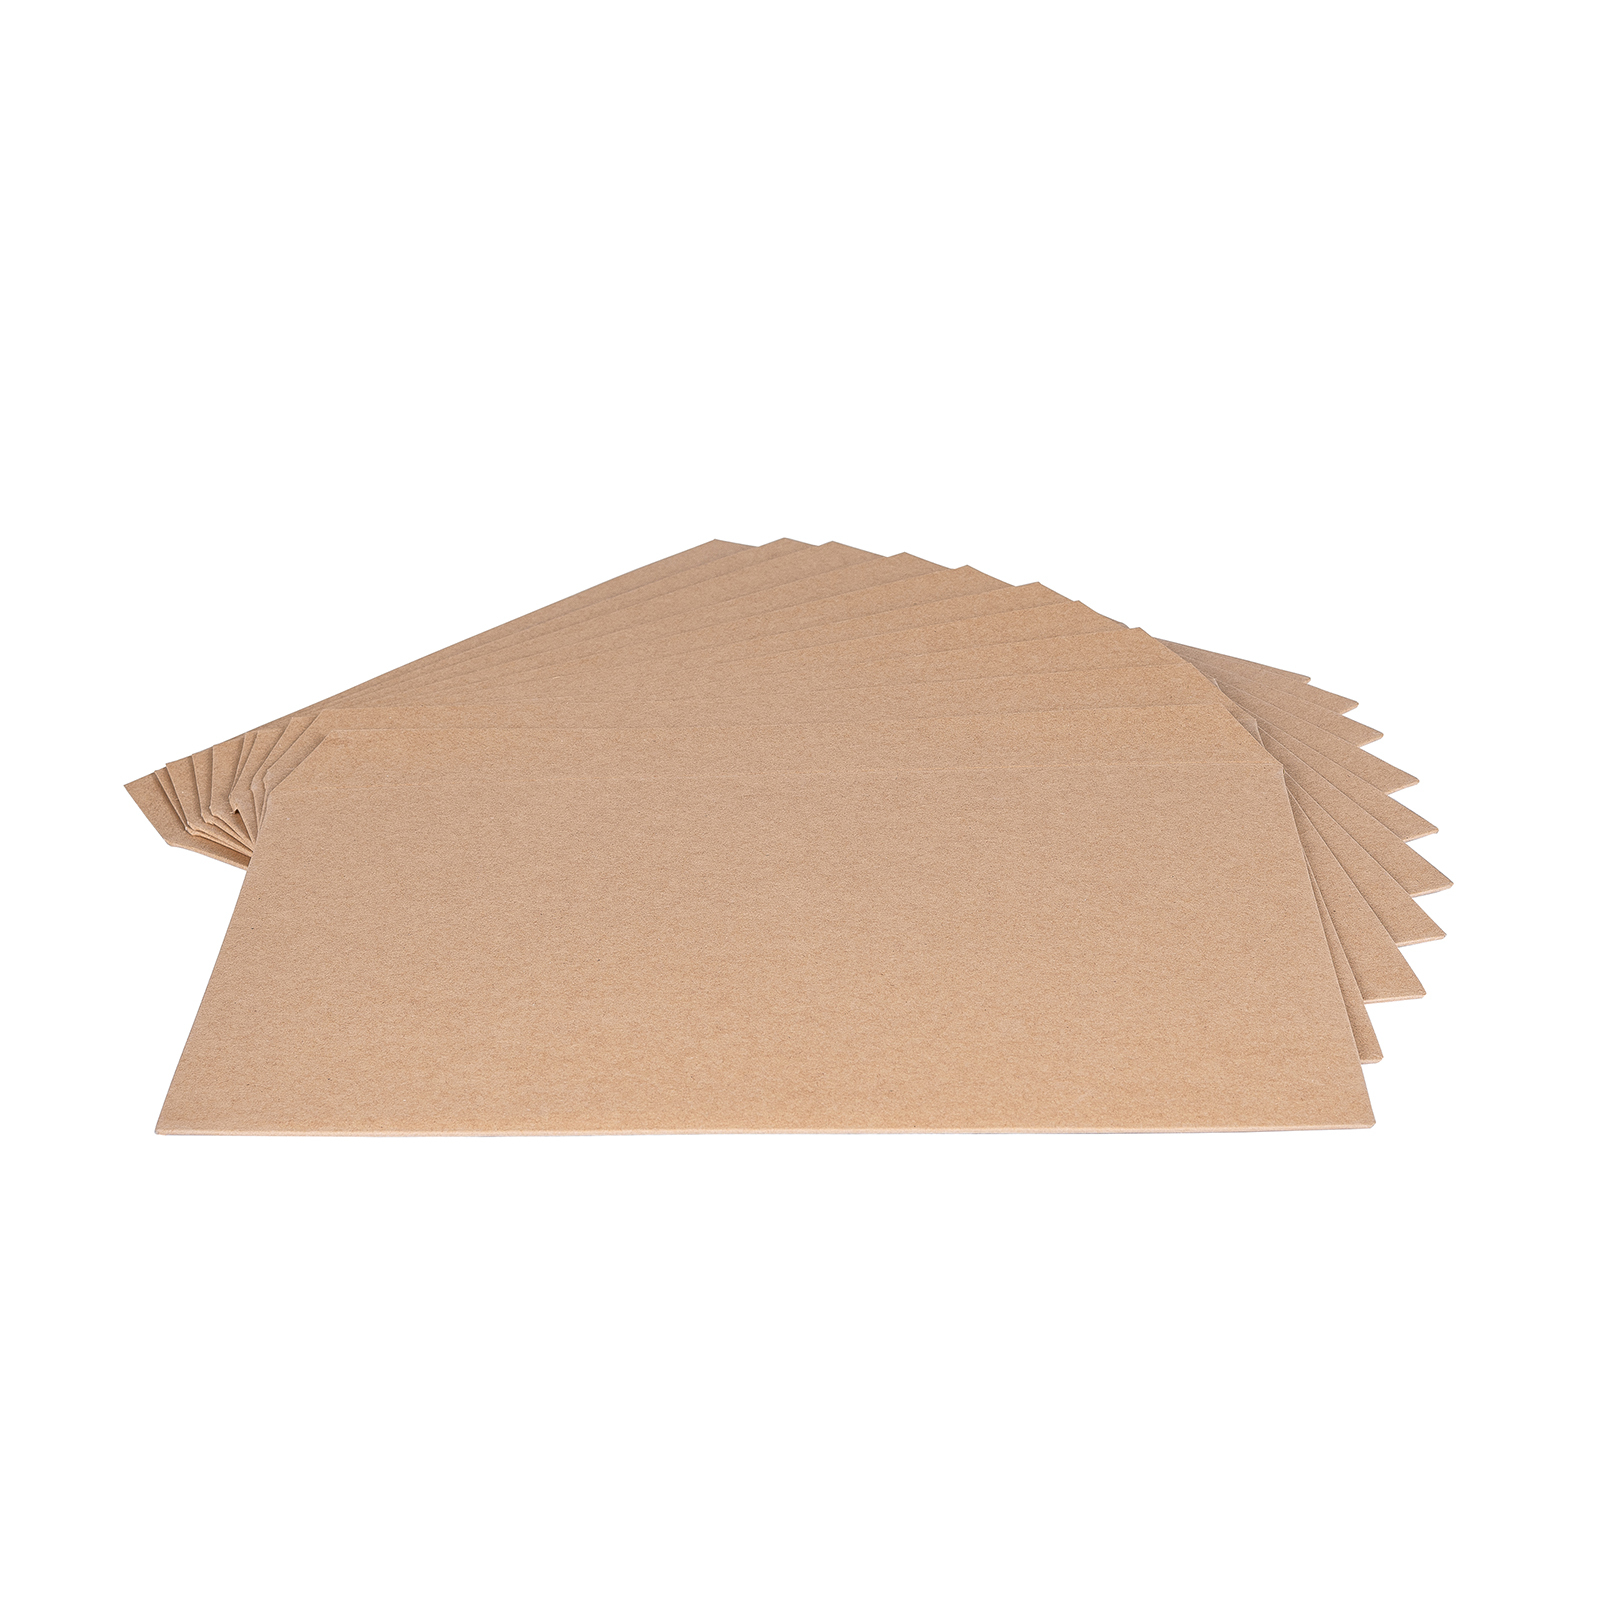 Wrap & Move 297 x 420mm Cardboard A3 Envelope - 10 Pack